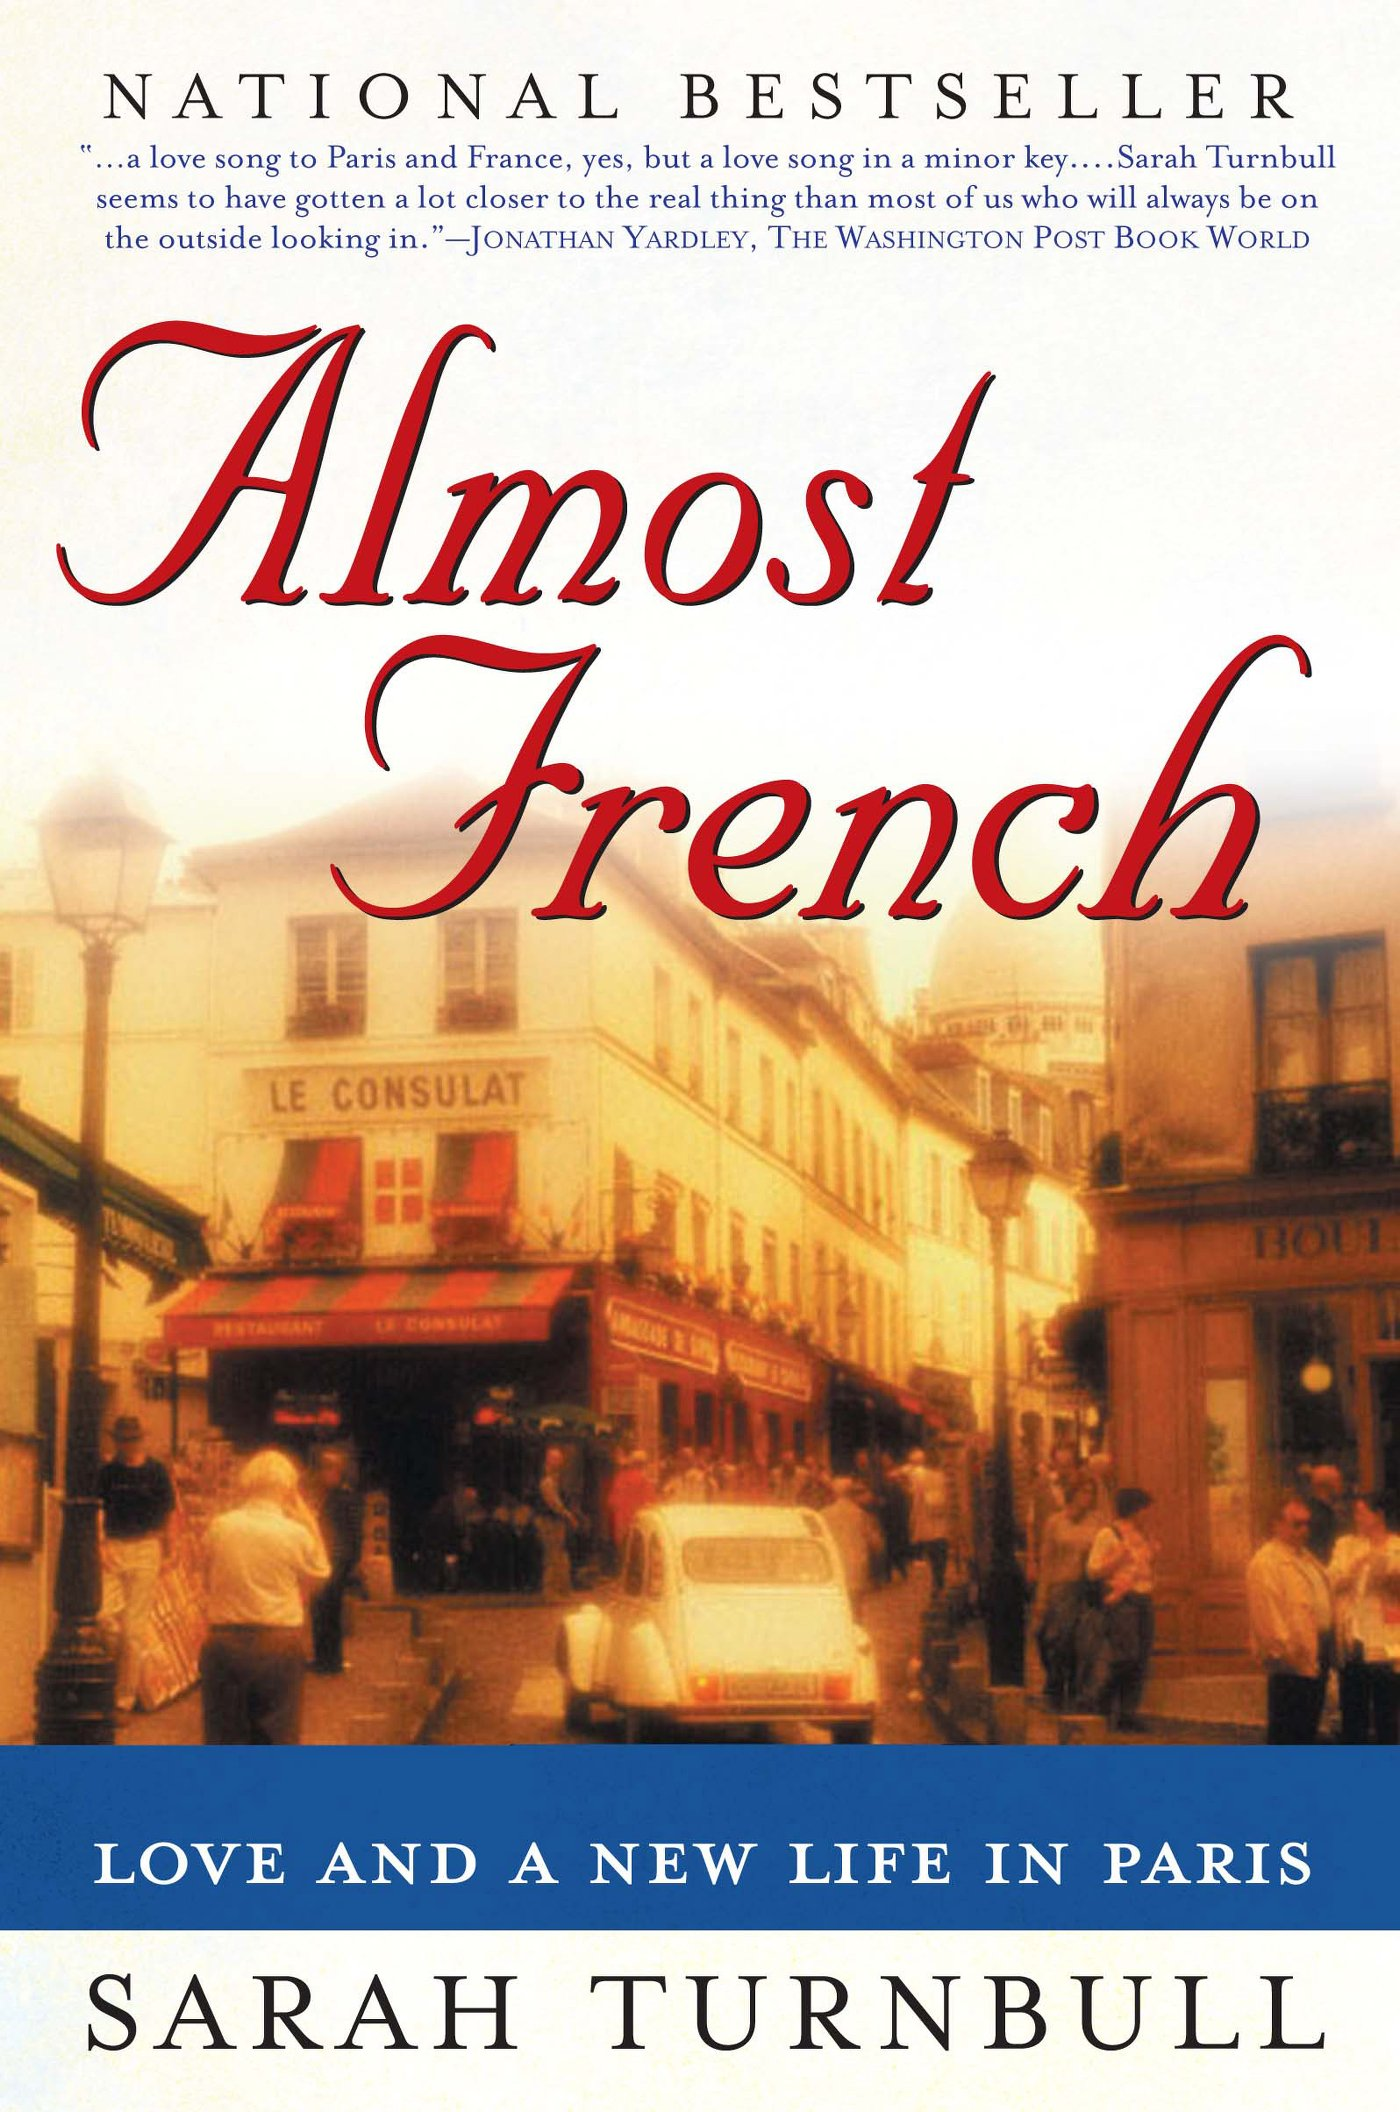 I Like All Books About People Who Fall In Love With Paris, So When This  Came Up In Amazon As A Suggested Read, I Immediately Bought It And Wasn't